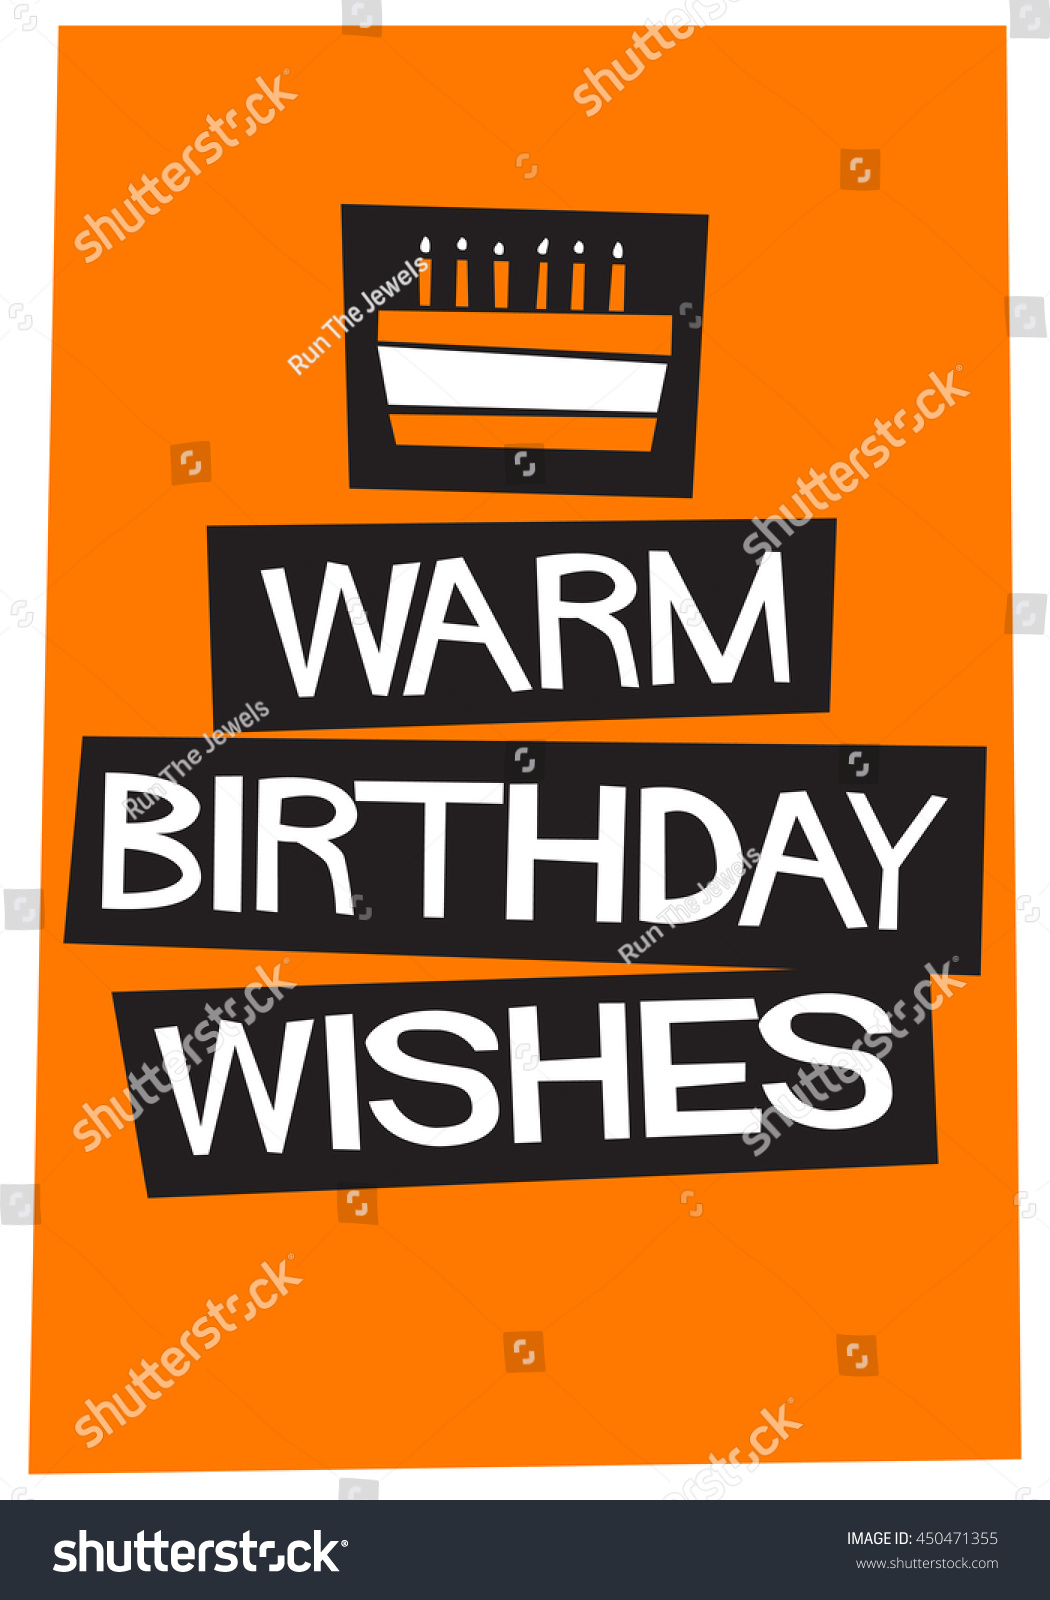 birthday wishes poster making ; stock-vector--warm-birthday-wishes-written-on-a-cake-vector-illustration-in-flat-style-poster-design-450471355